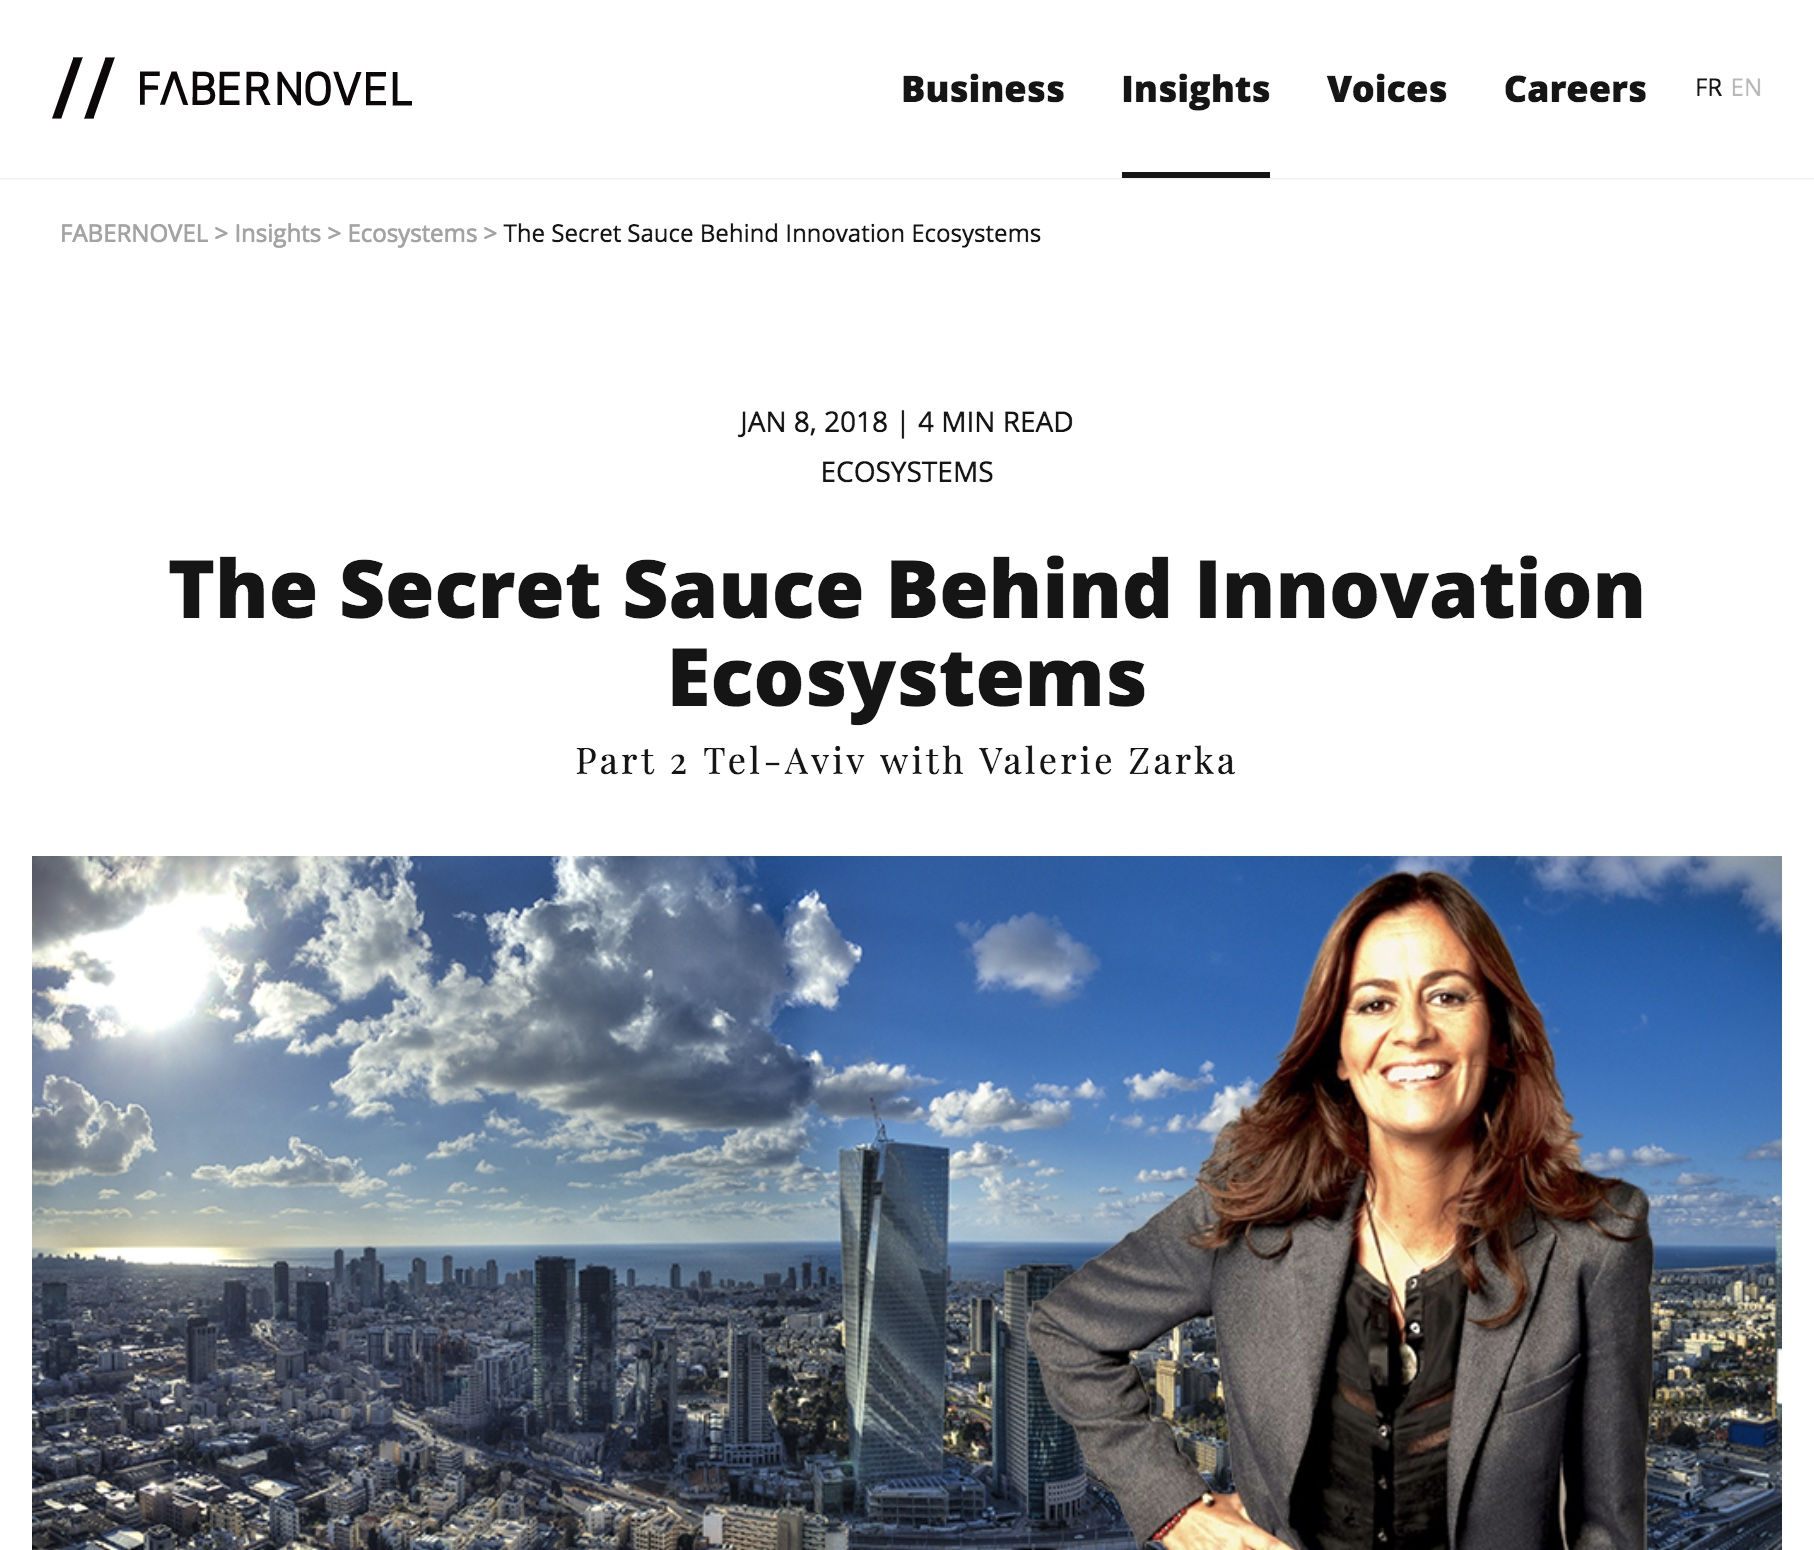 Fabernovel – The Secret Sauce Behind Innovation Ecosystems